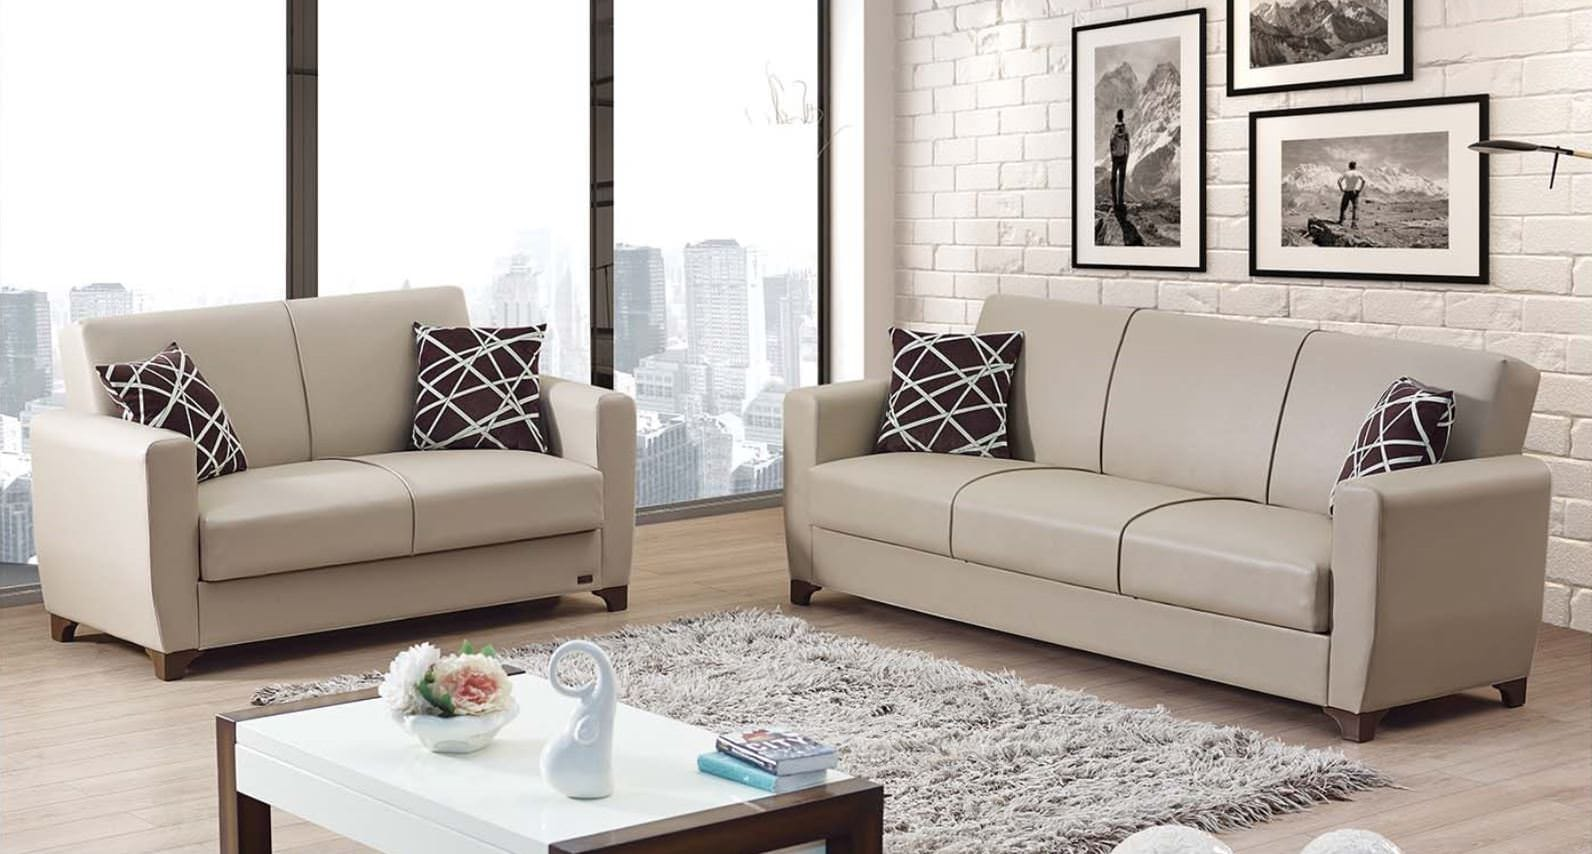 yonkers cream leather sofa bed by empire furniture usa. Black Bedroom Furniture Sets. Home Design Ideas